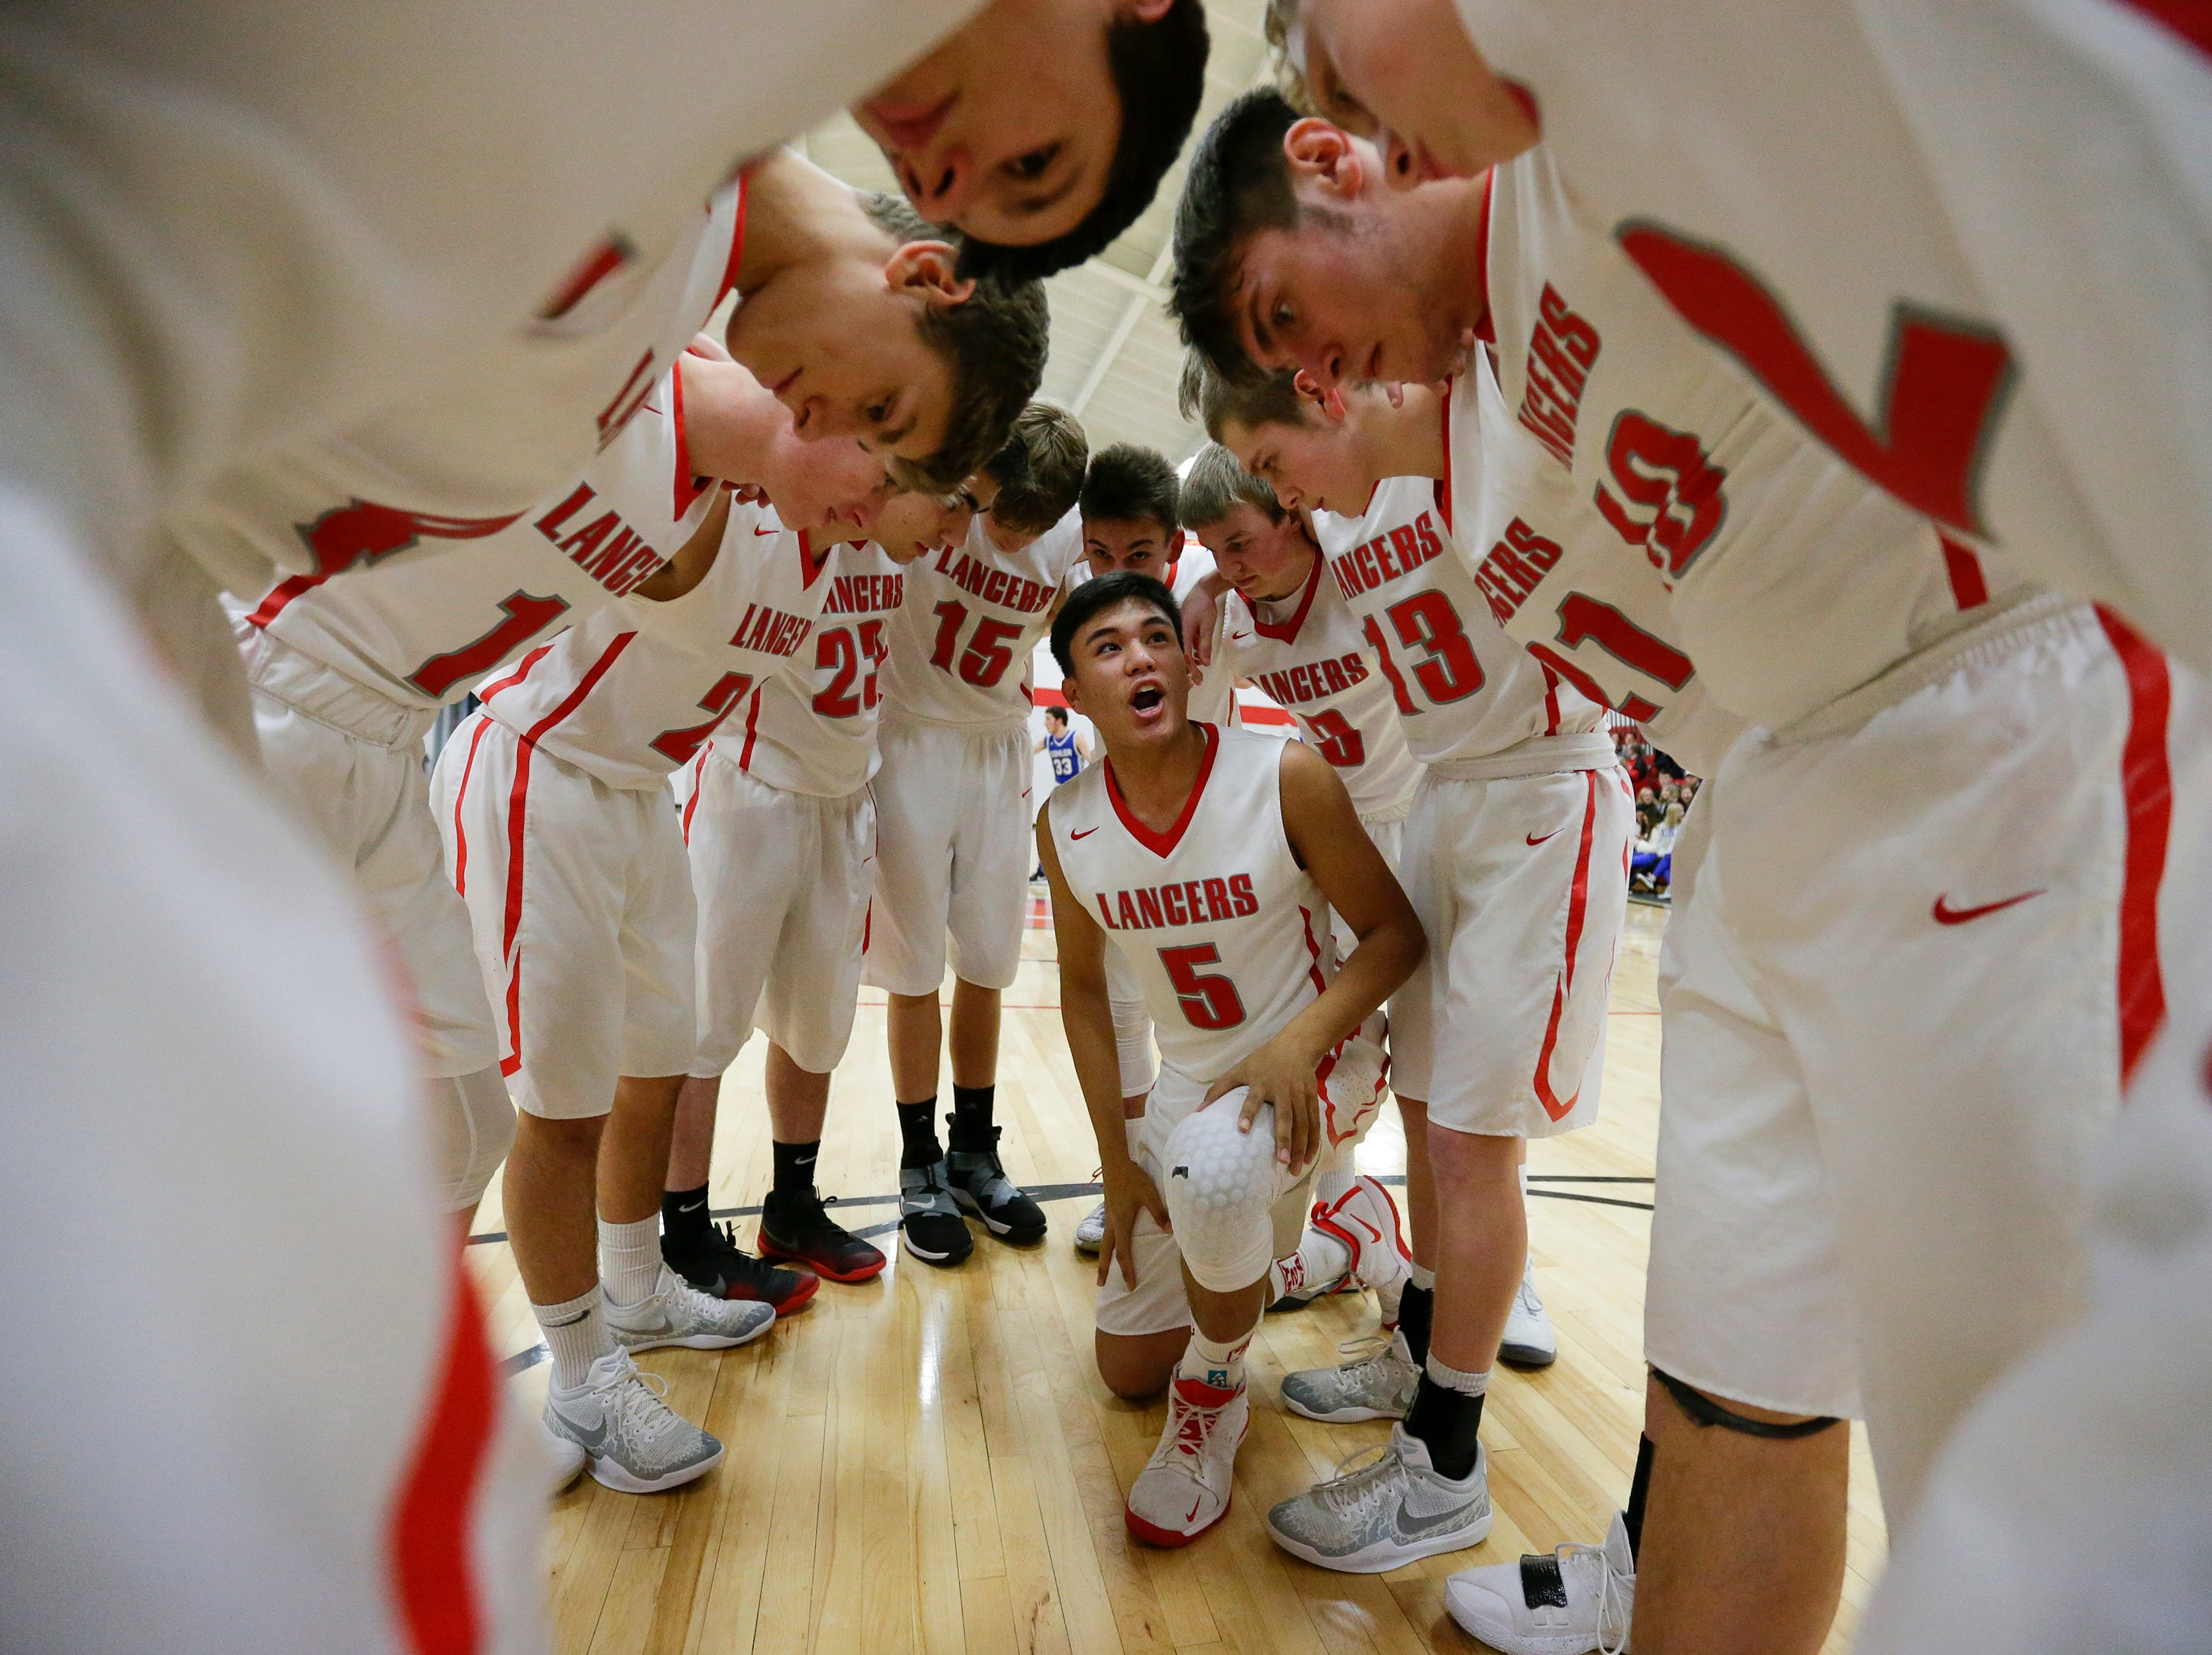 Manitowoc Lutheran's Santana Lomibao (5) rallies his teammates before their game against Kohler at Manitowoc Lutheran High School Friday, January 18, 2019, in Manitowoc, Wis. Joshua Clark/USA TODAY NETWORK-Wisconsin